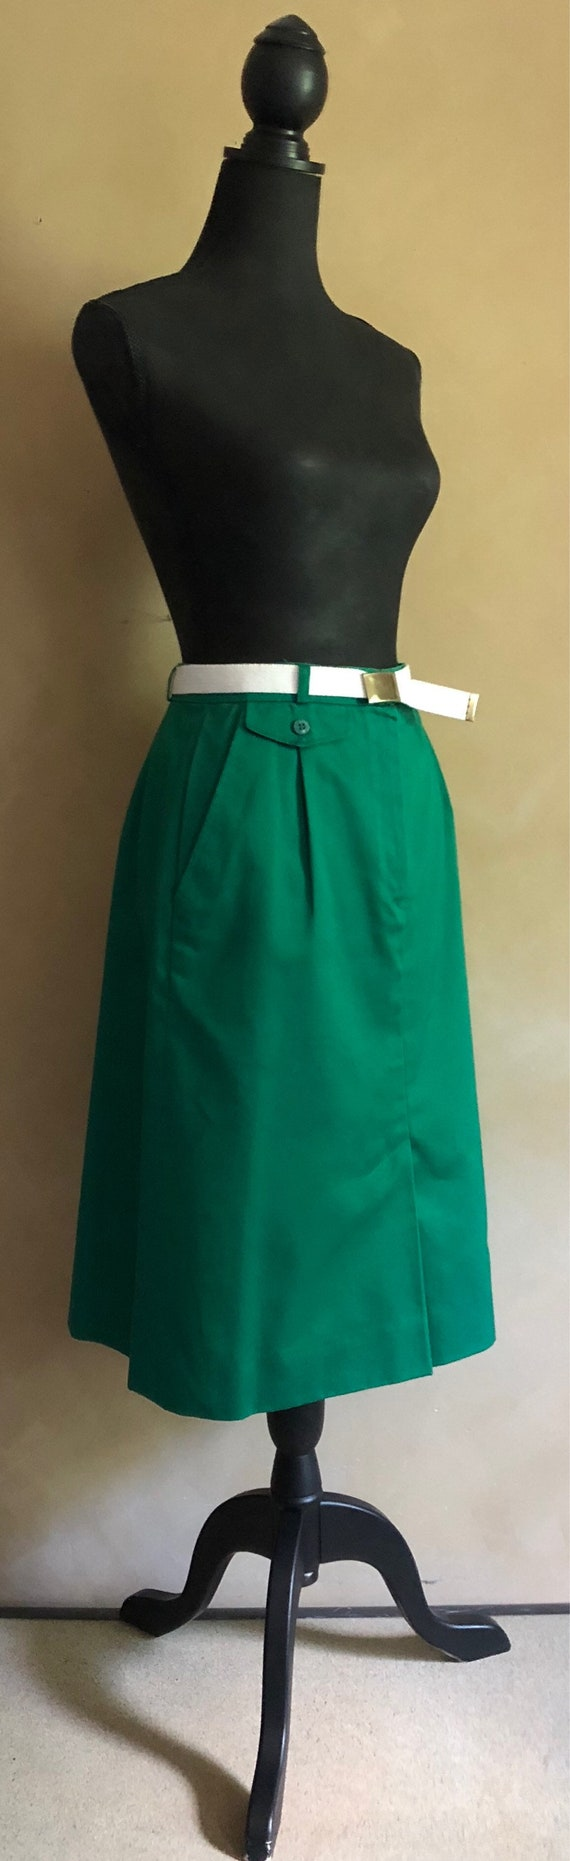 Vintage Green 70's Skirt - The Villager Brand - adjustable white belt